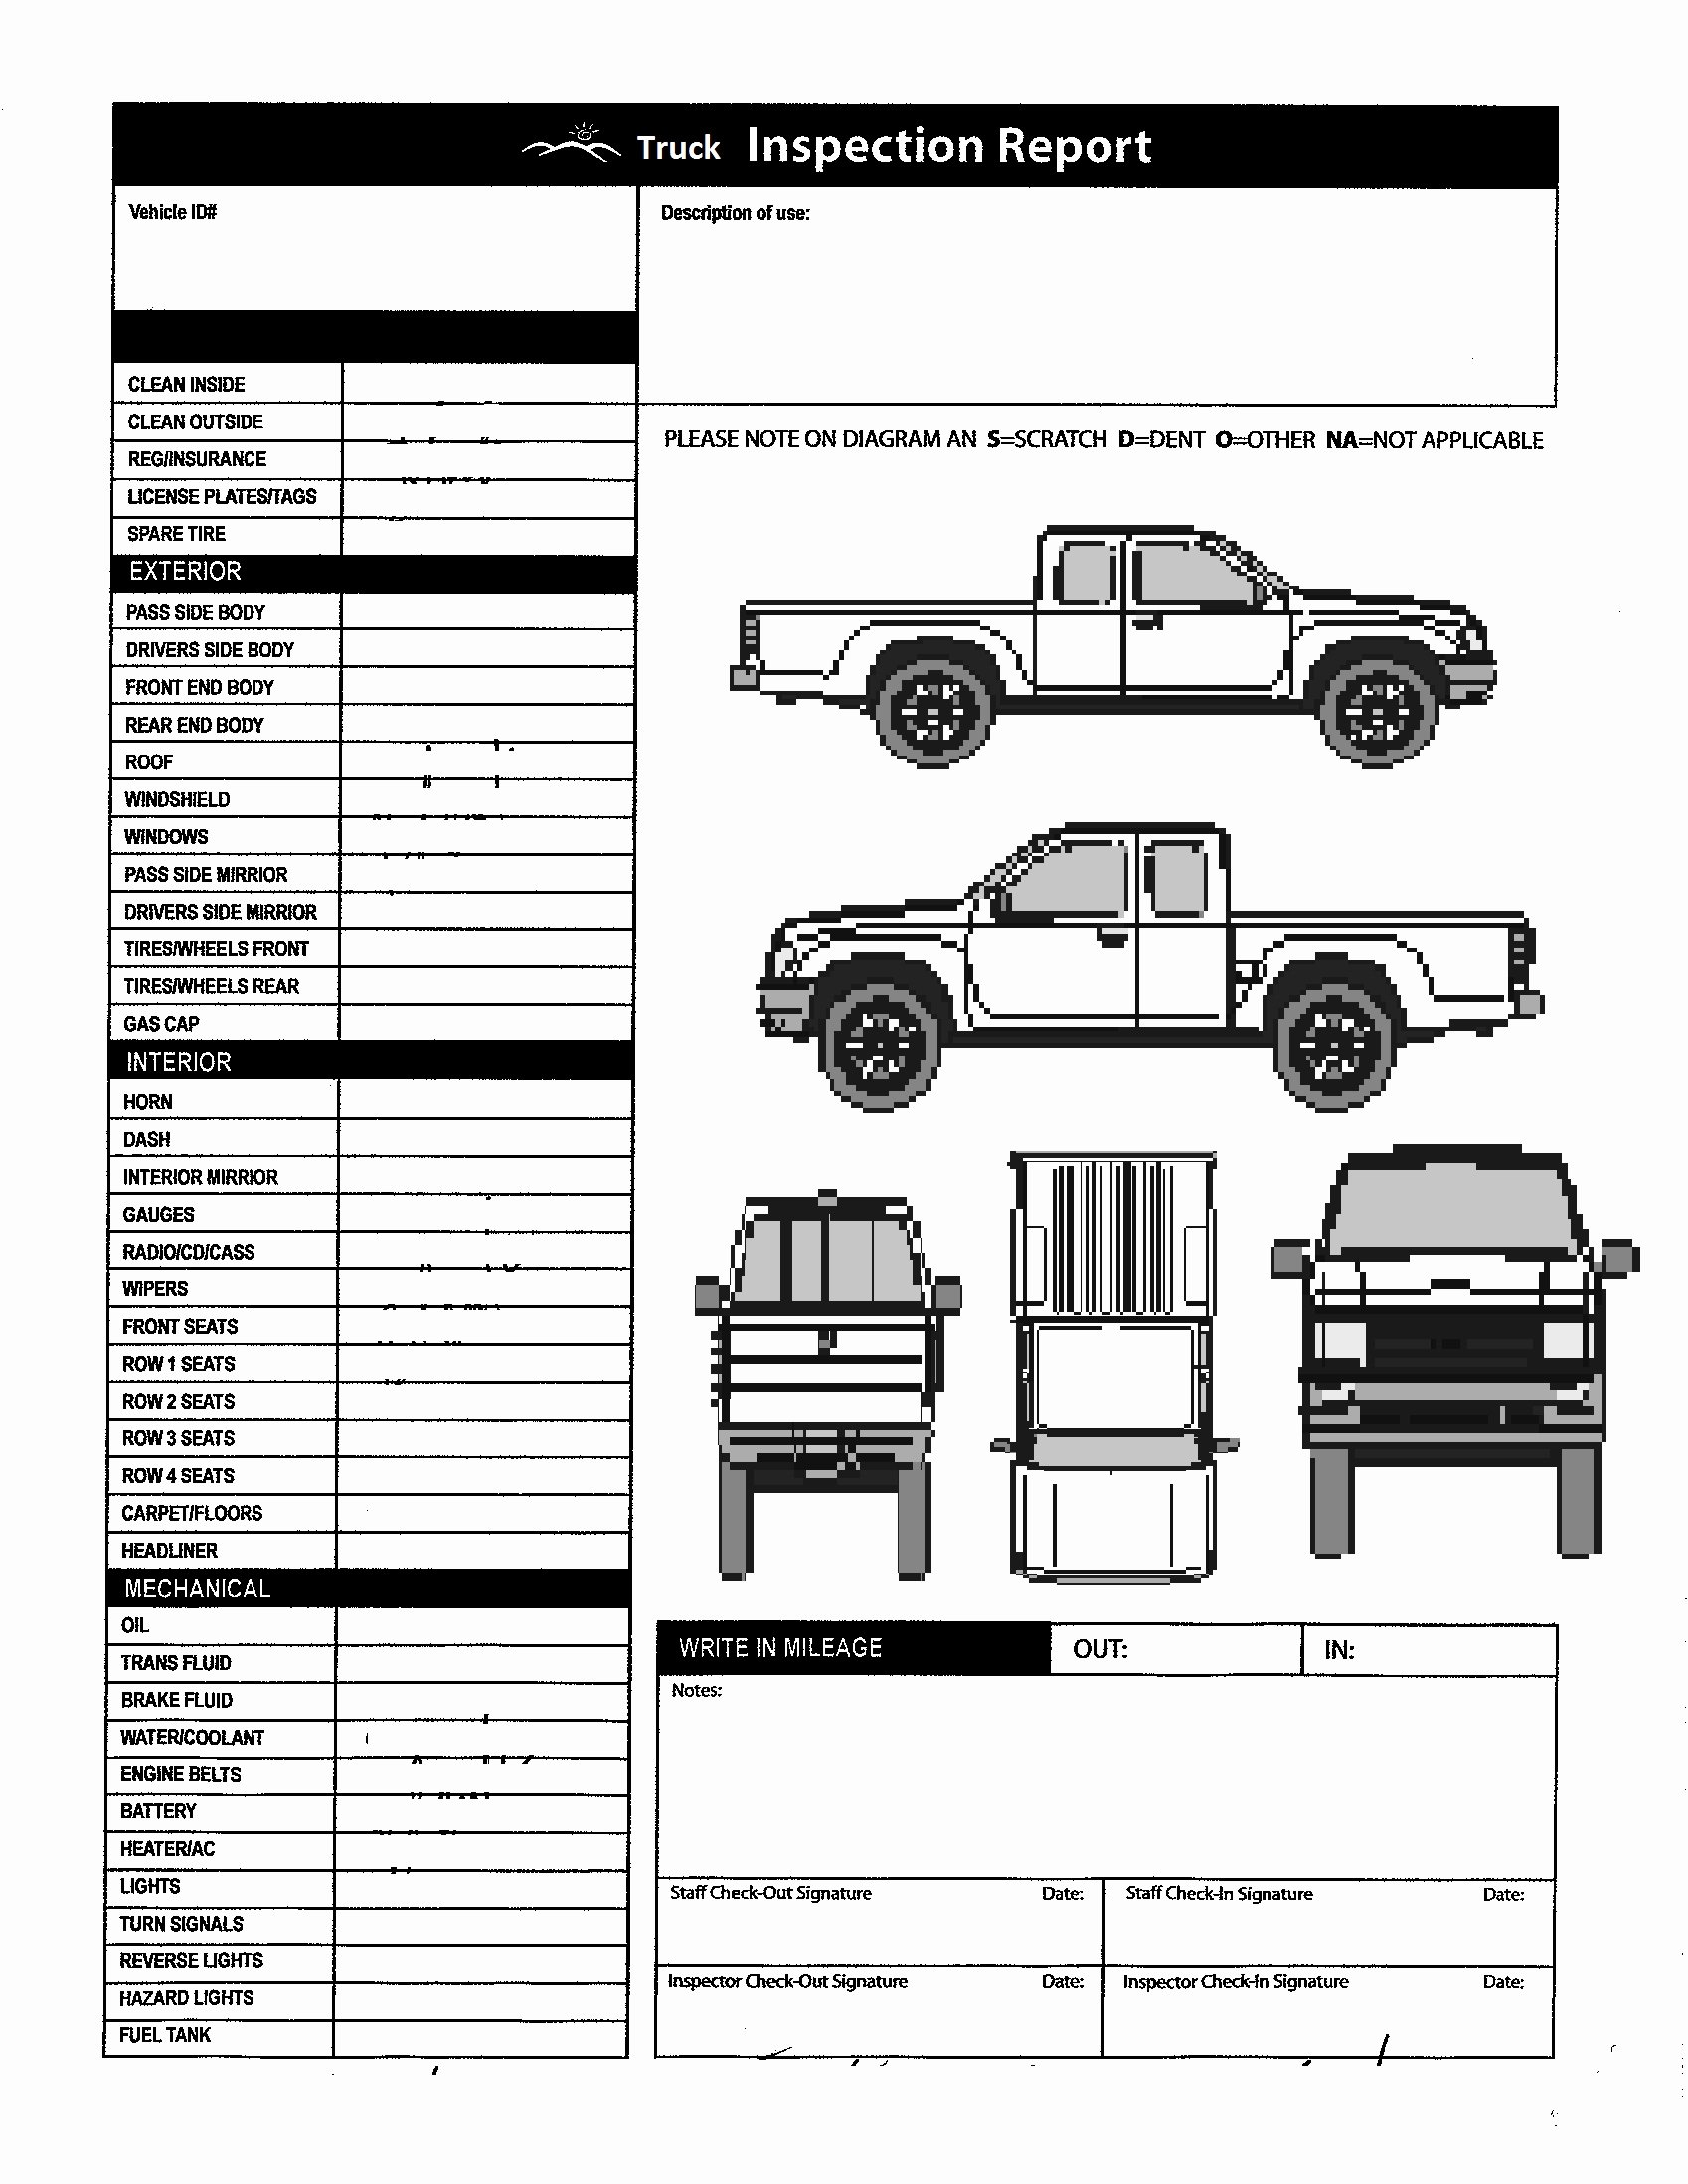 Vehicle Inspection forms Templates Fresh Vehicle Inspection form Template